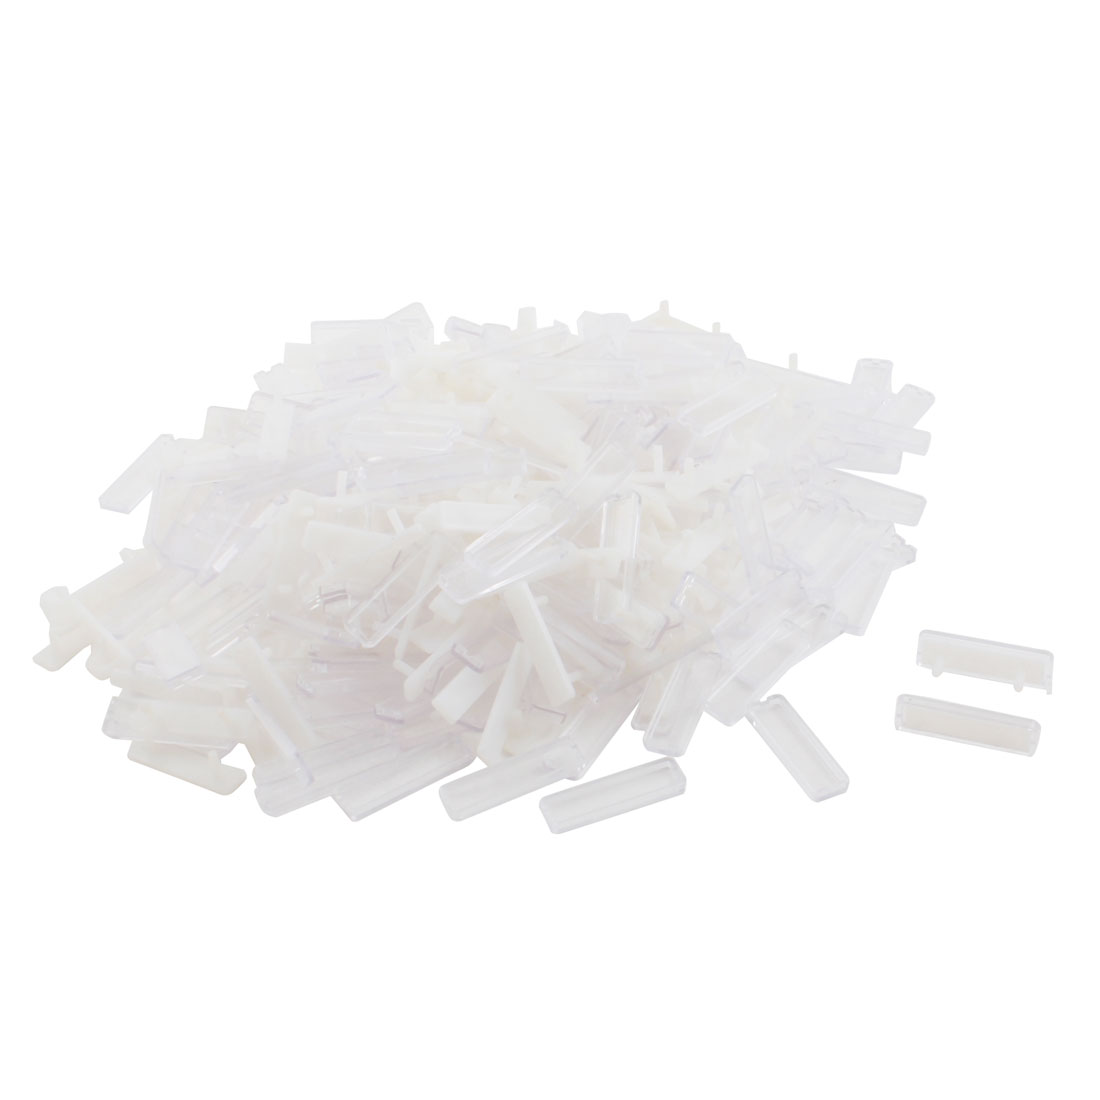 200Pcs 13mm x 45mm Rectangle Plastic Waterproof Wire Terminal Label Stick White Clear for Power Distributer Case